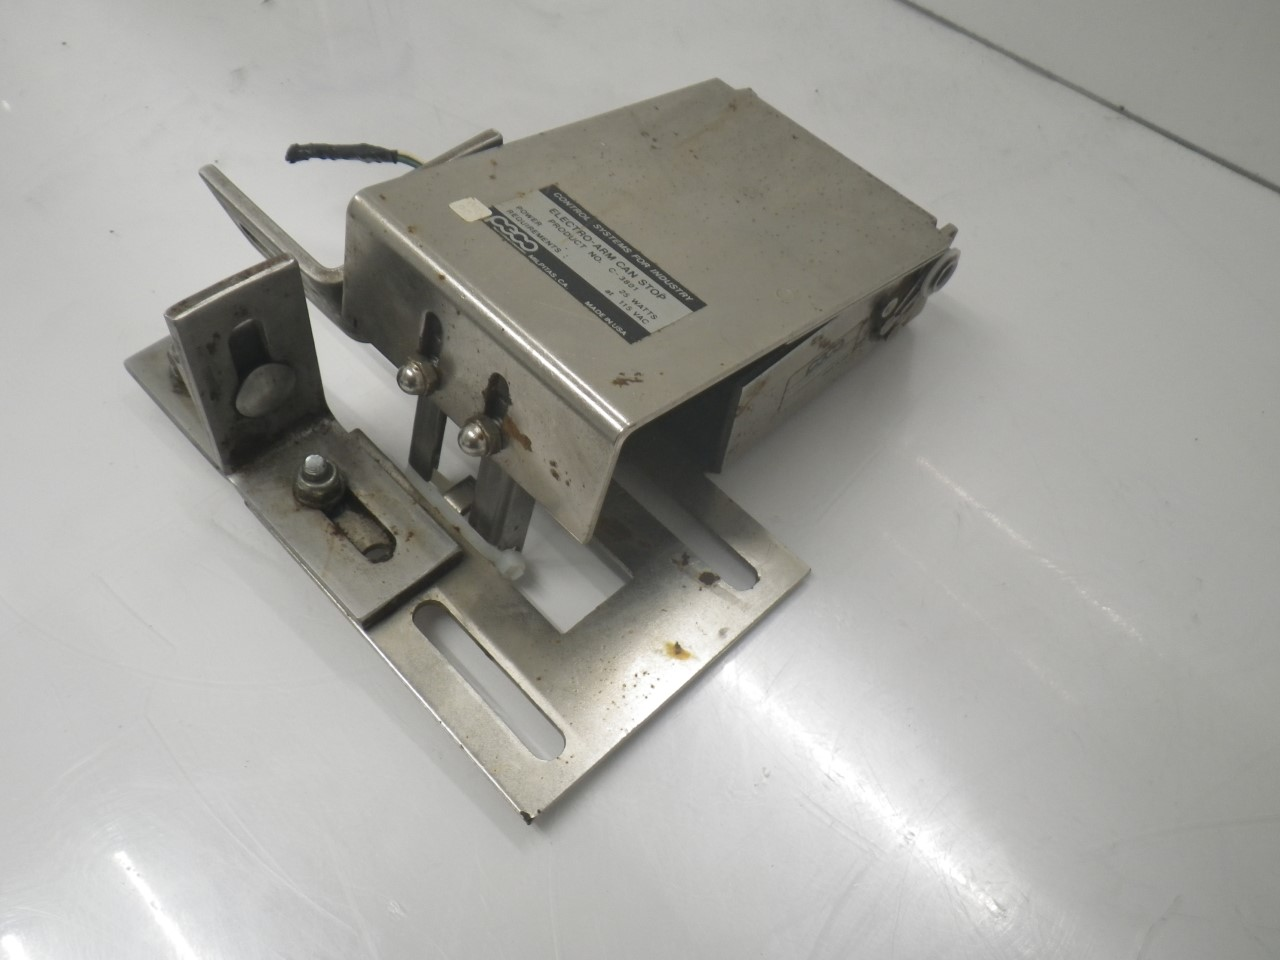 IMGP6937C-3801 C-3800A 3012Peco Electro-arm Controls forPackage Inspection(Used Tested) (4)